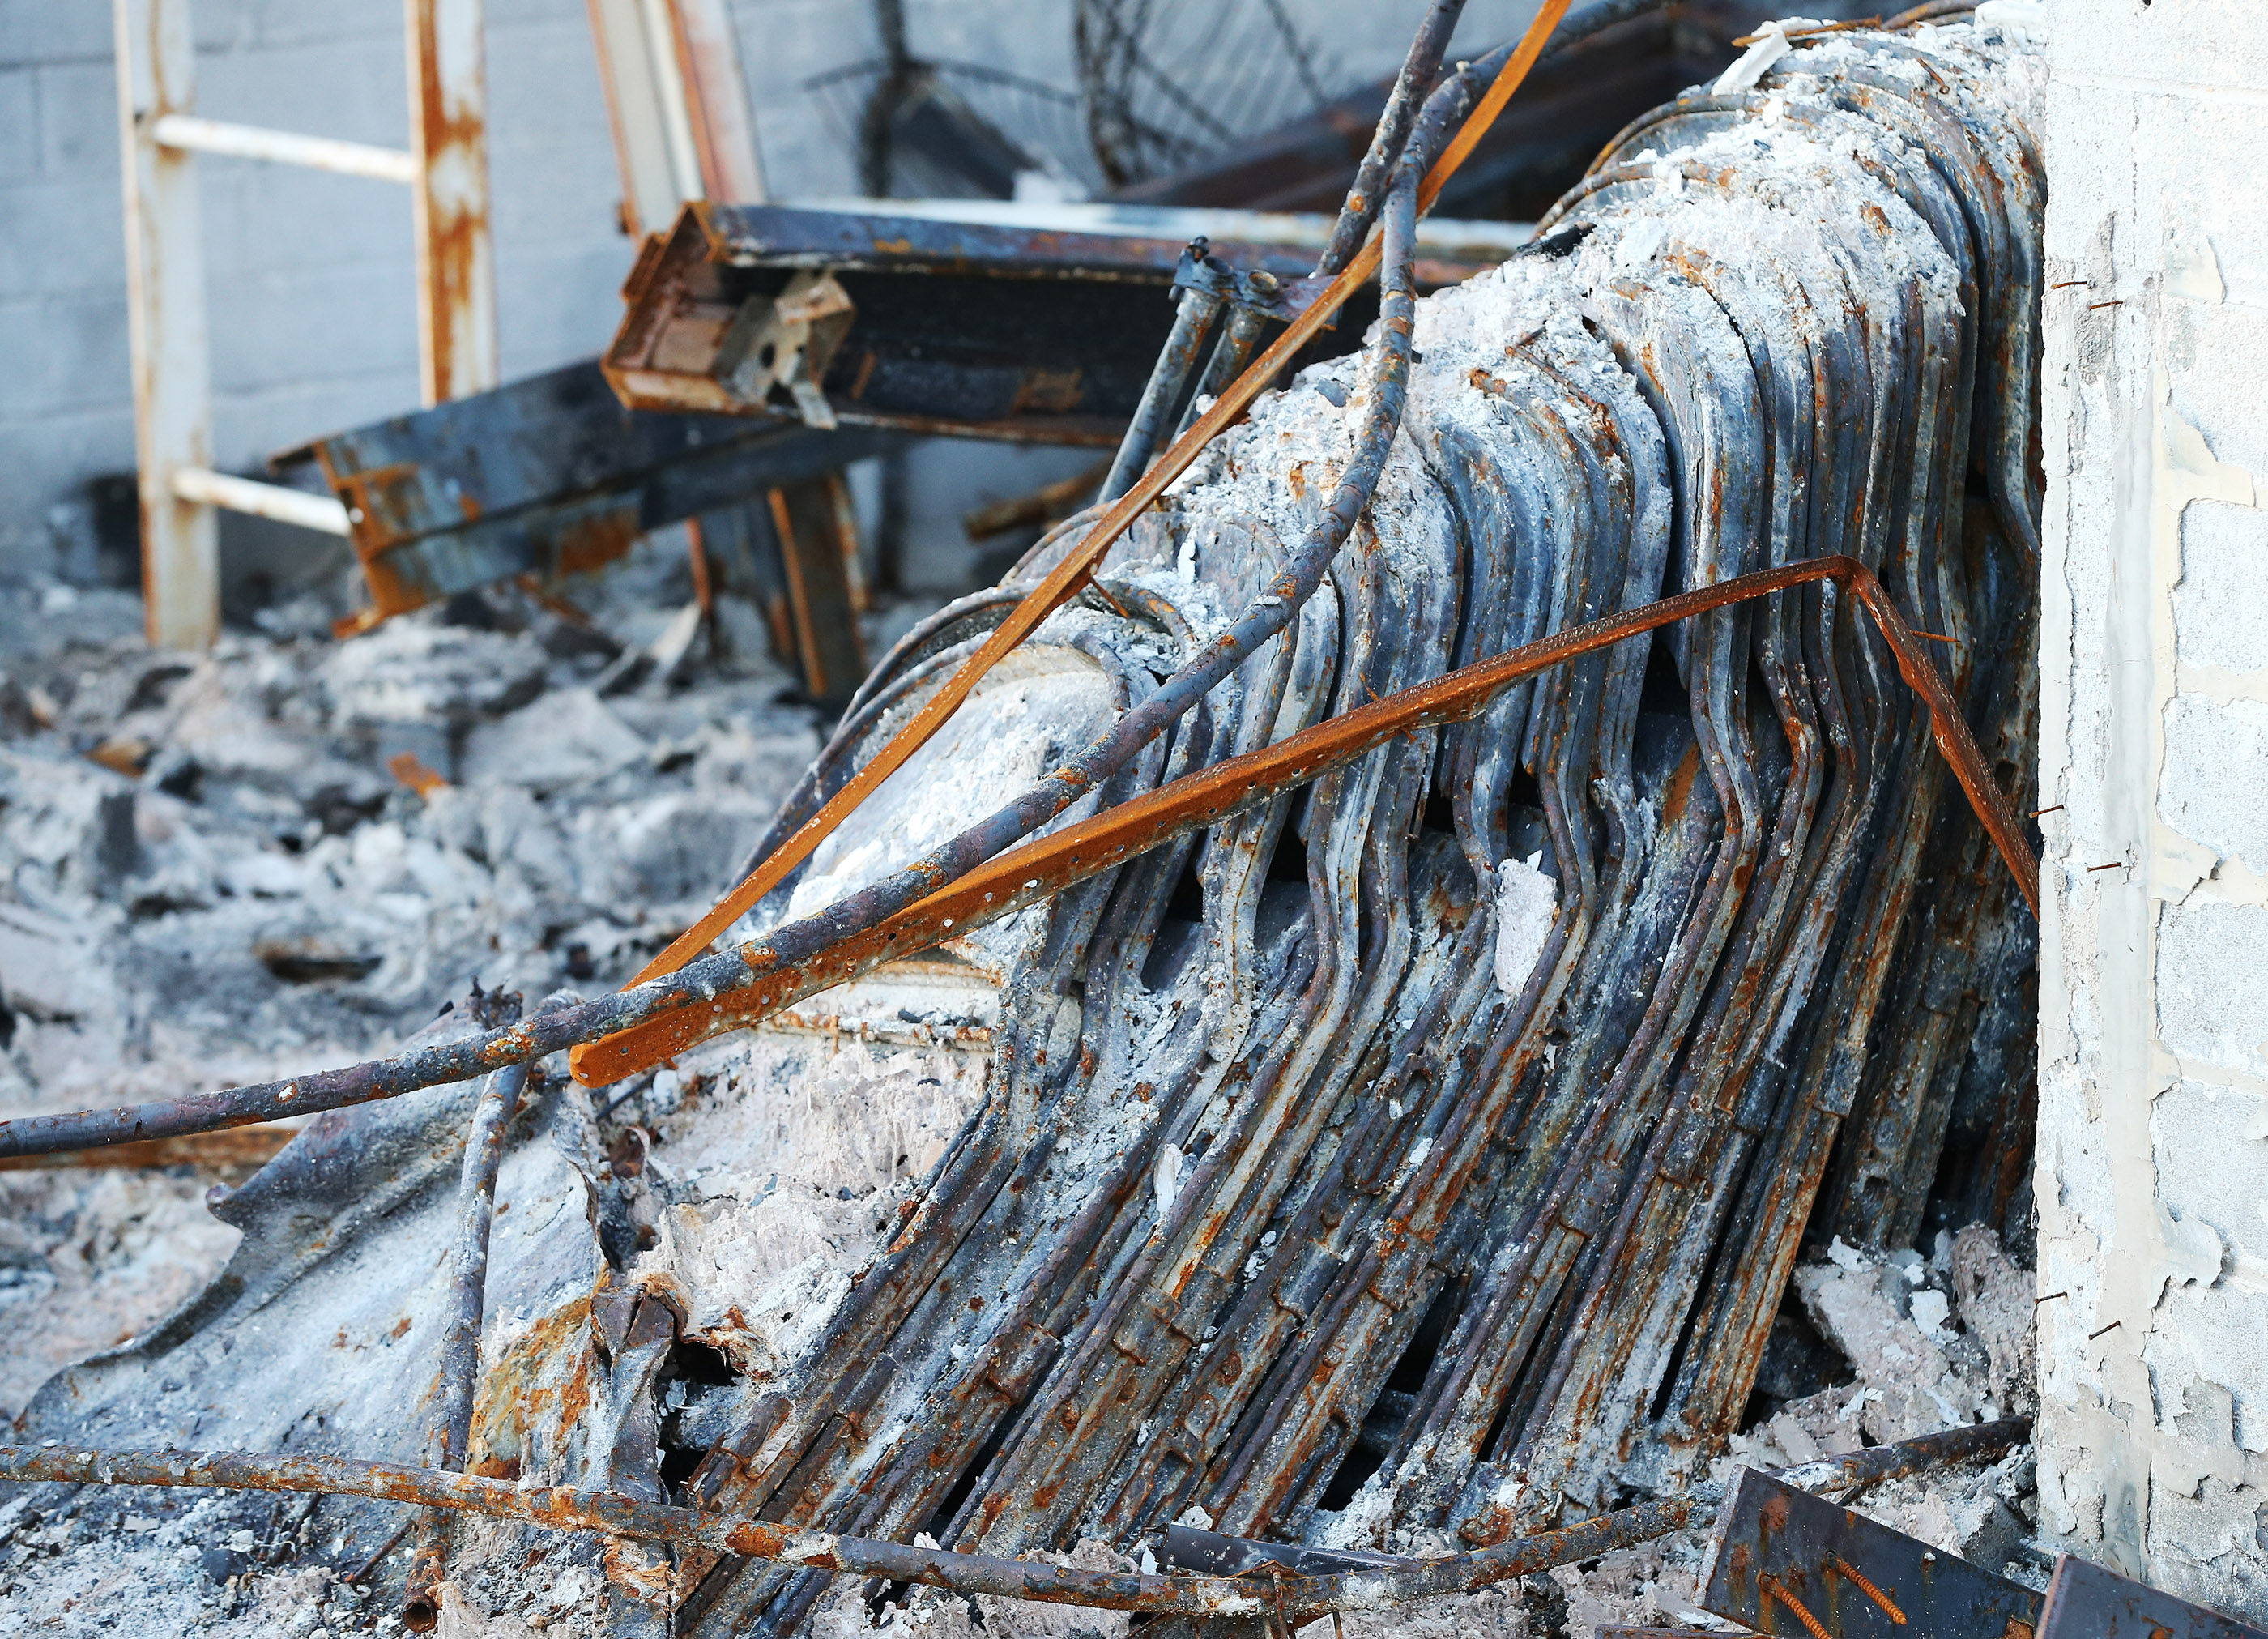 Chairs remained stacked at a burned-out meetinghouse of The Church of Jesus Christ of Latter-day Saints in Paradise, California, on Saturday, Jan. 12, 2019, two months after the Camp Fire destroyed more than 18,000 homes and businesses.